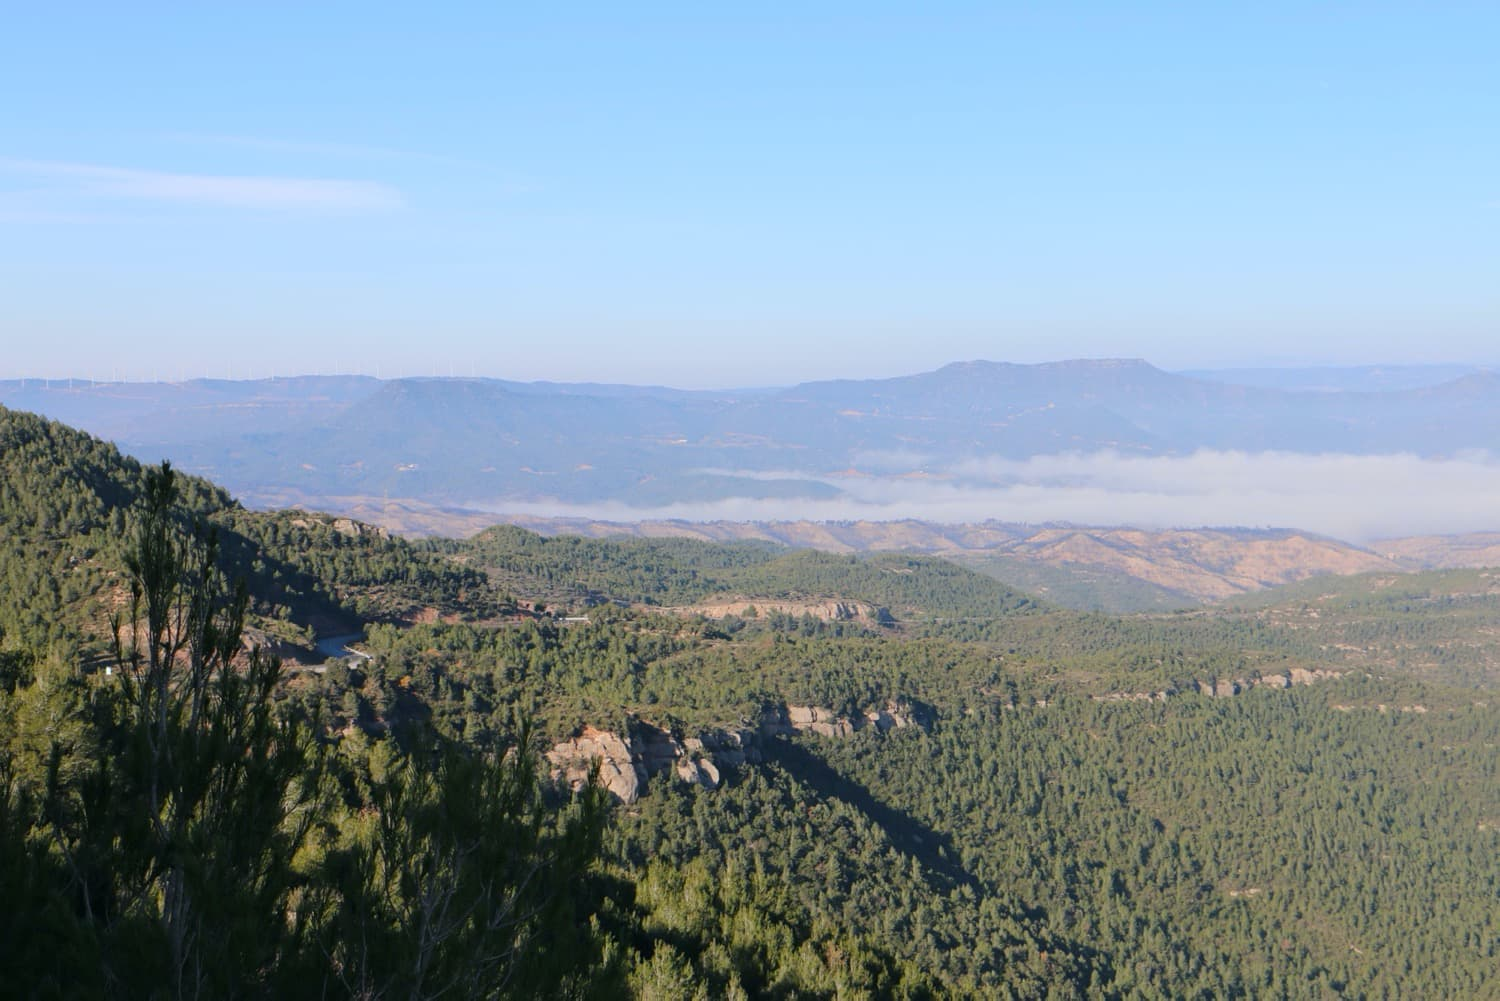 The fog covers towns such as Sant Salvador de Guardiola, Salelles or Manresa, among many others.